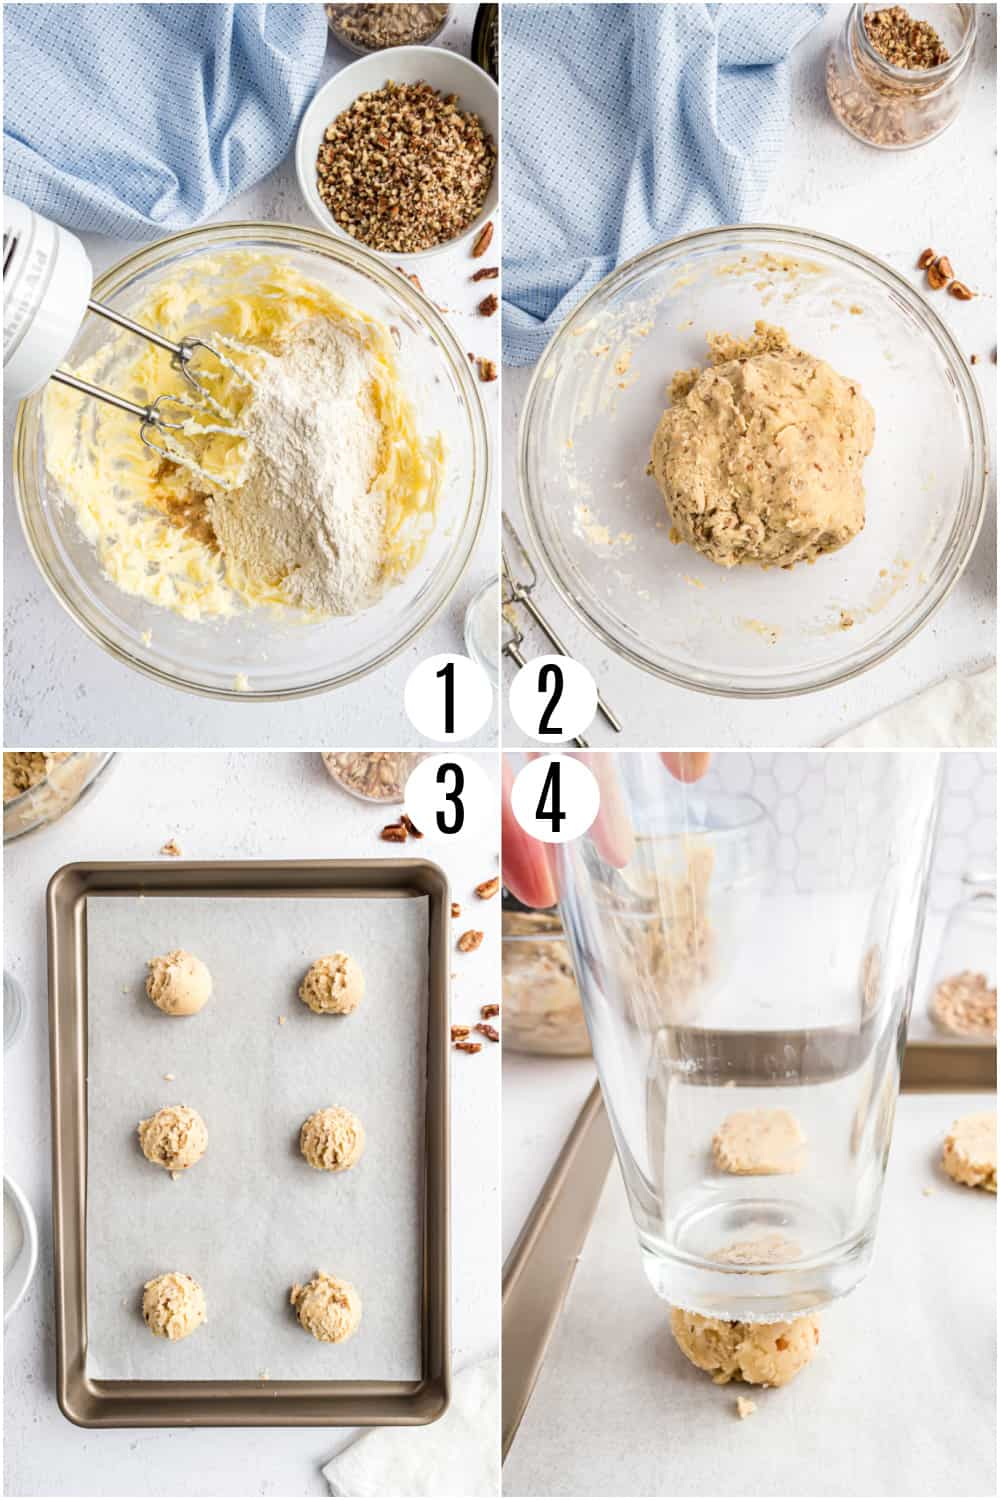 Step by step photos showing how to make pecan sandies.